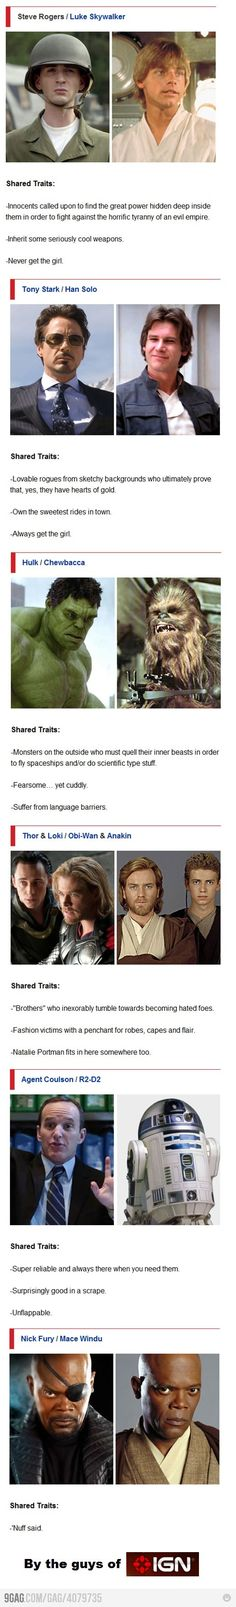 Avengers vs Star Wars -  so much laughter!  This was fantastic!